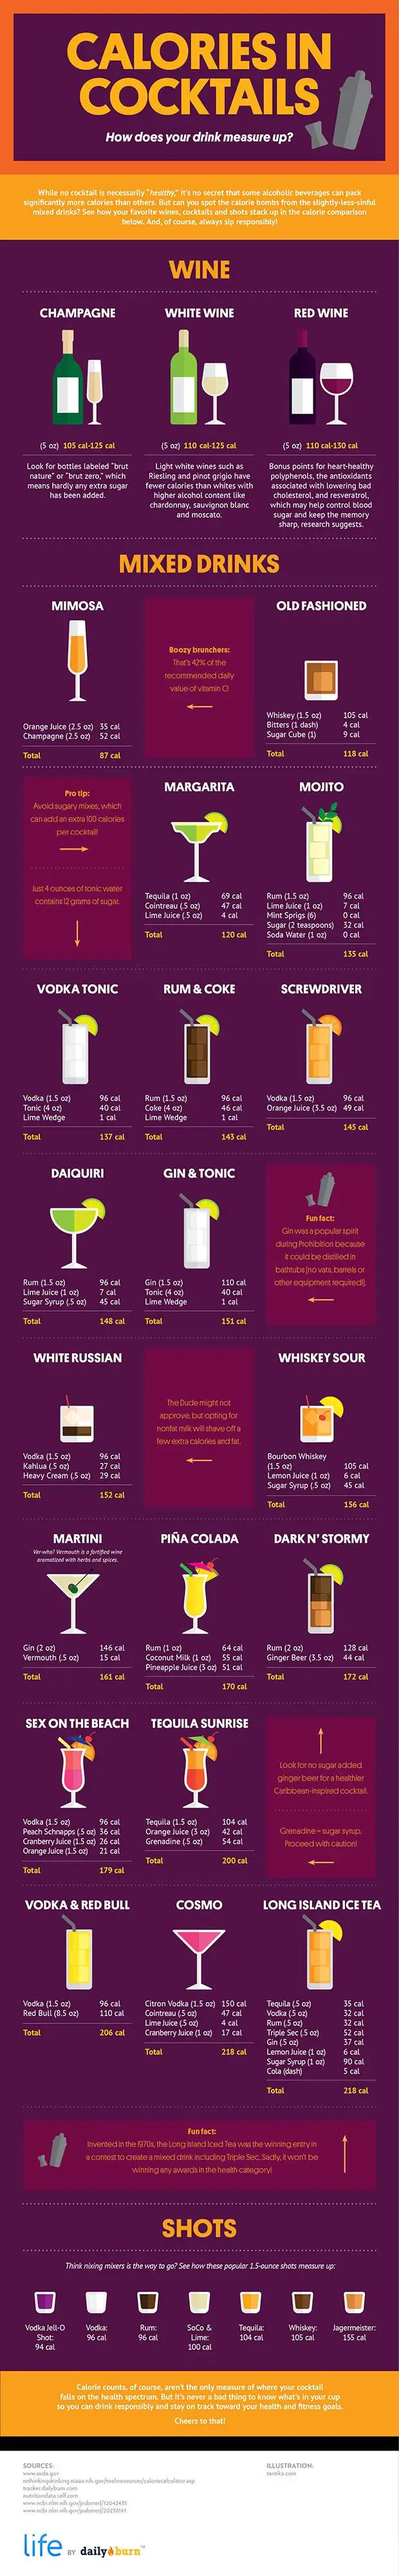 Calories In Cocktails